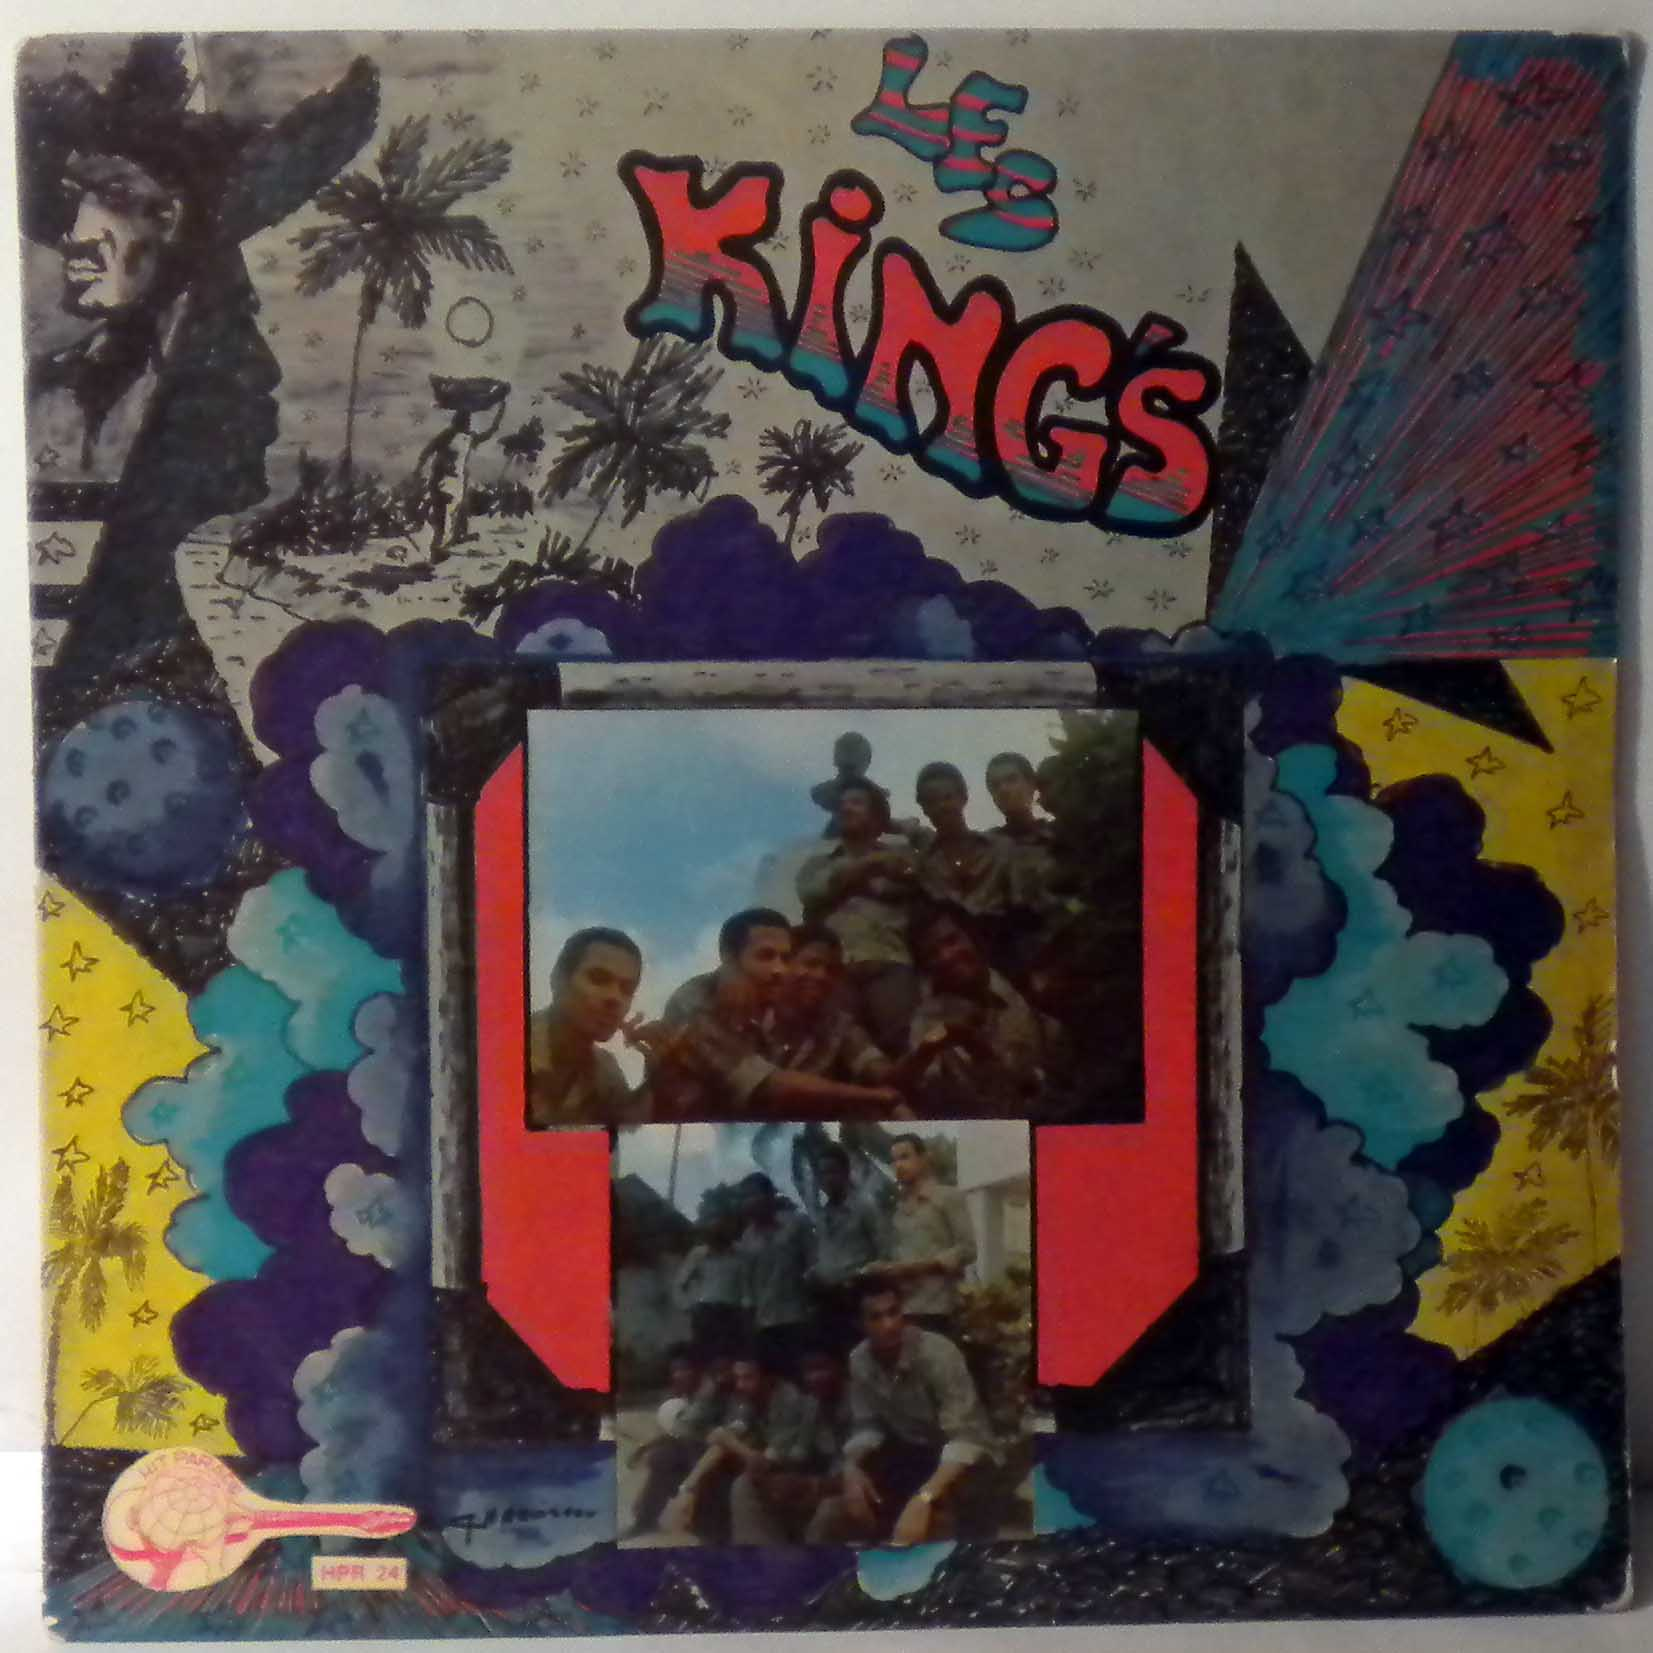 LES KINGS - Same - LP